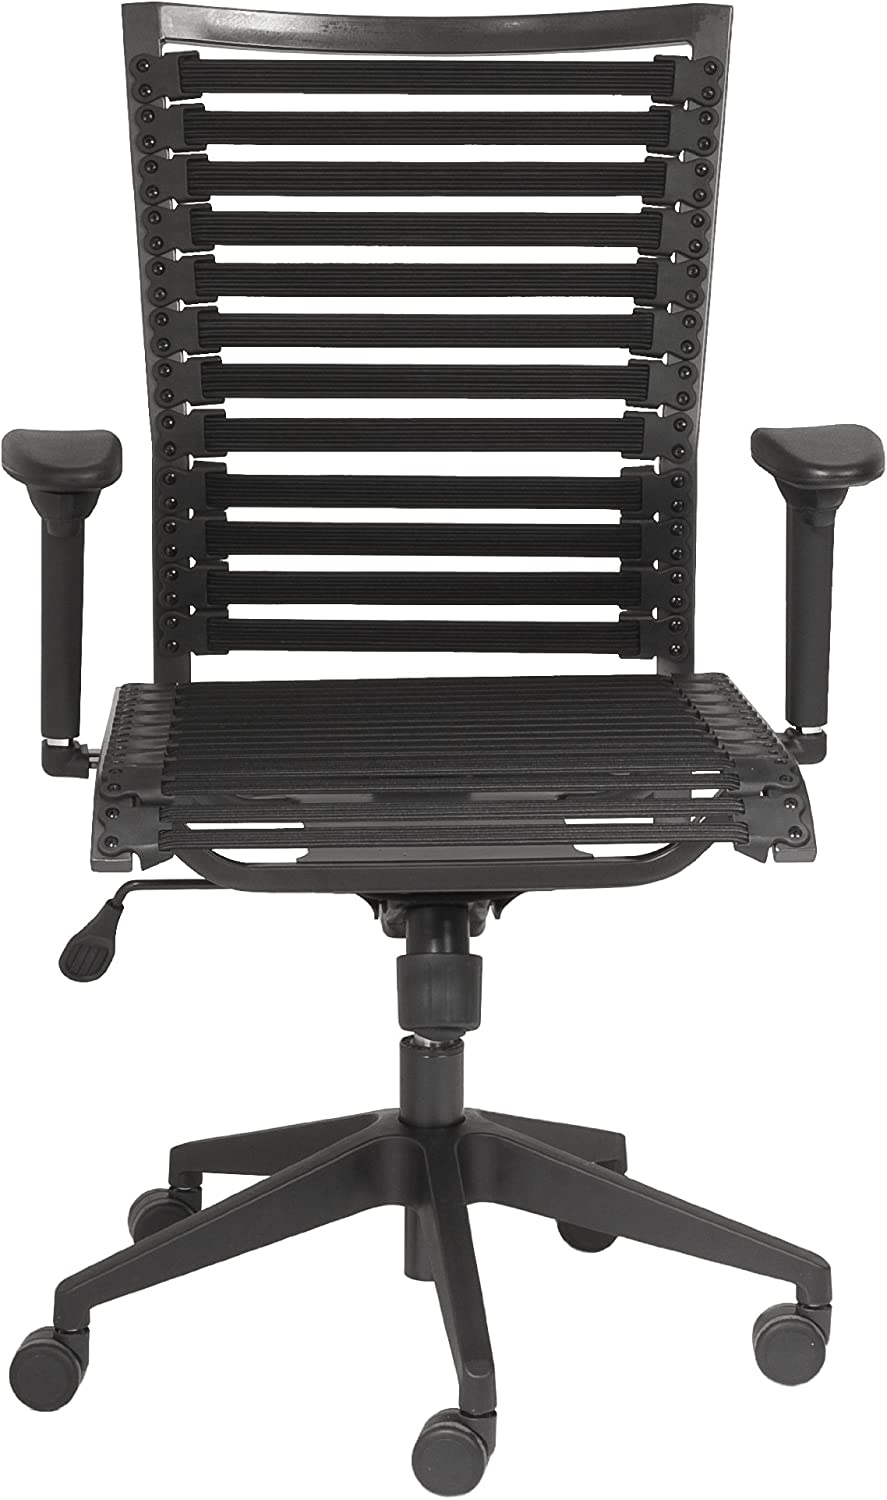 Euro Style Pro Flat Bungie High Back Adjustable Office Chair with Adjustable Arms, Black Bungies with Graphite Black Frame